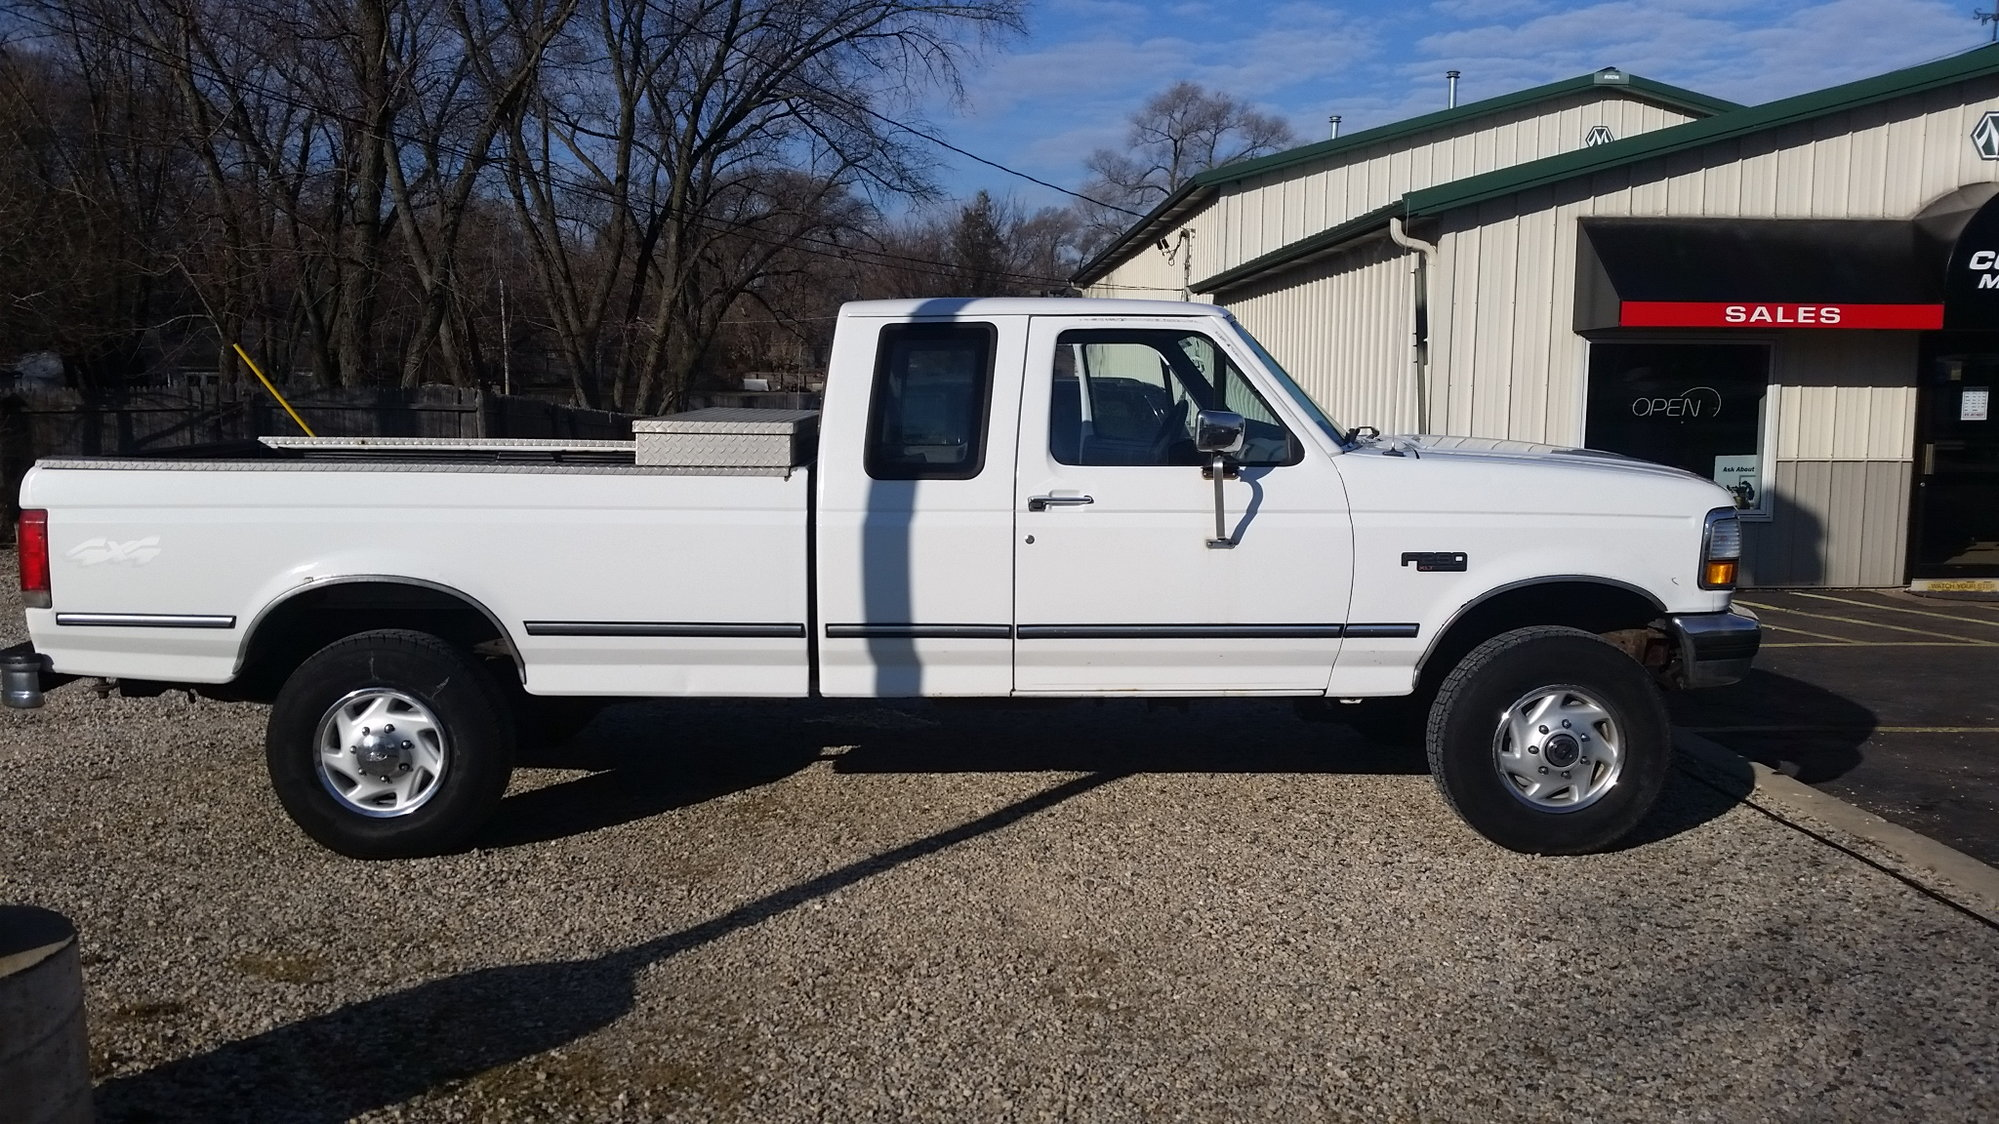 1995 f250 rim question - Ford Truck Enthusiasts Forums